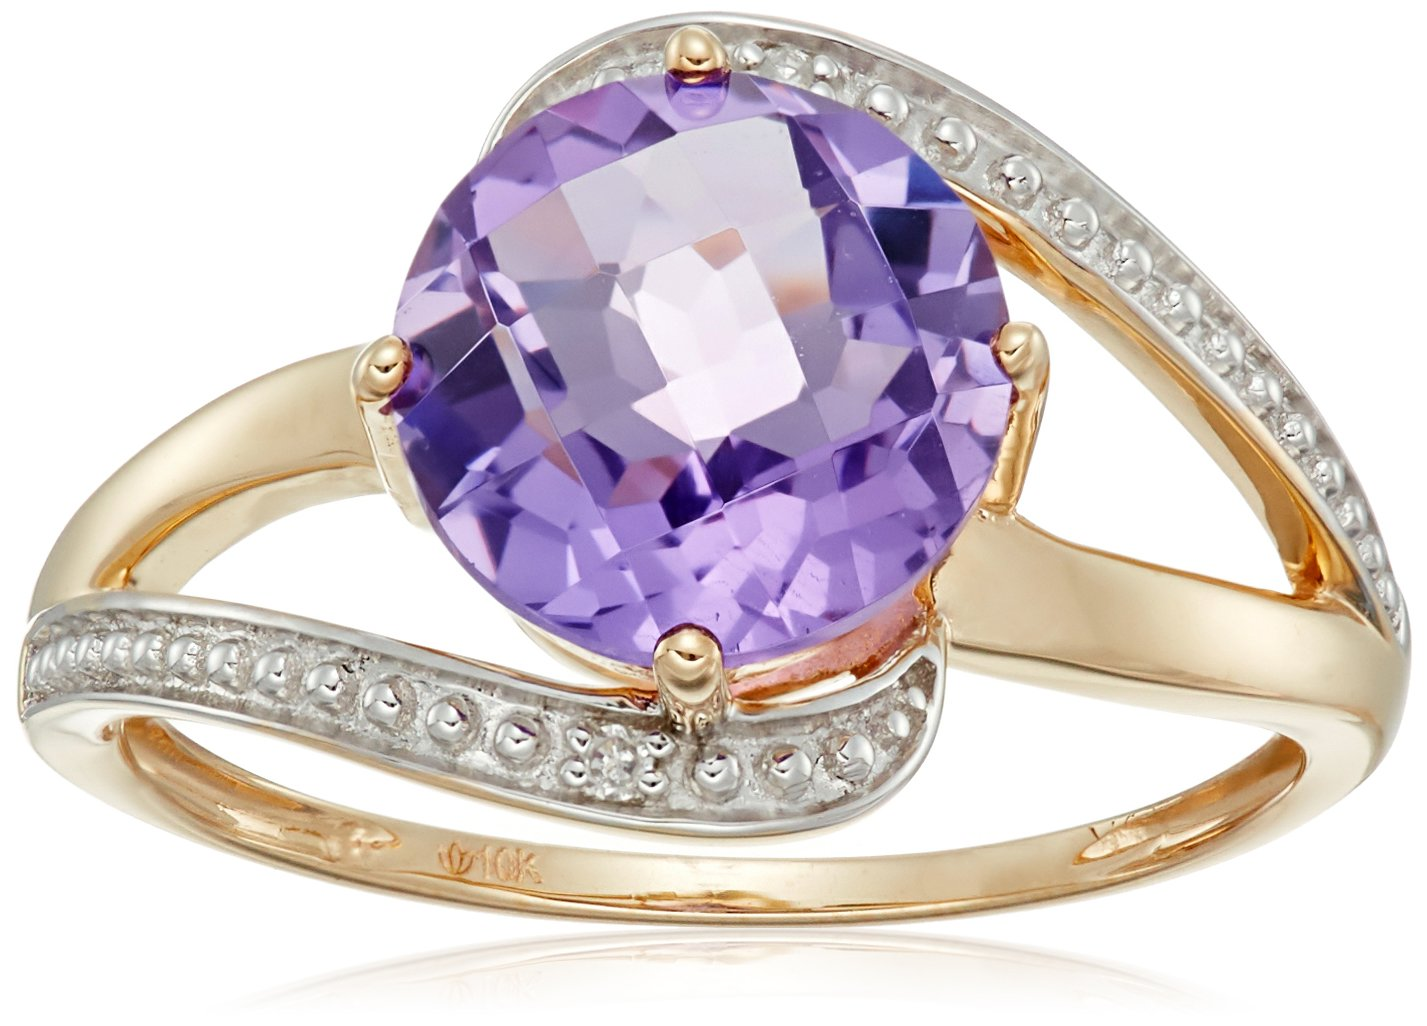 10k Yellow Gold African Amethyst and Diamond Accented Solitaire Ring, Size 7 by Amazon Collection